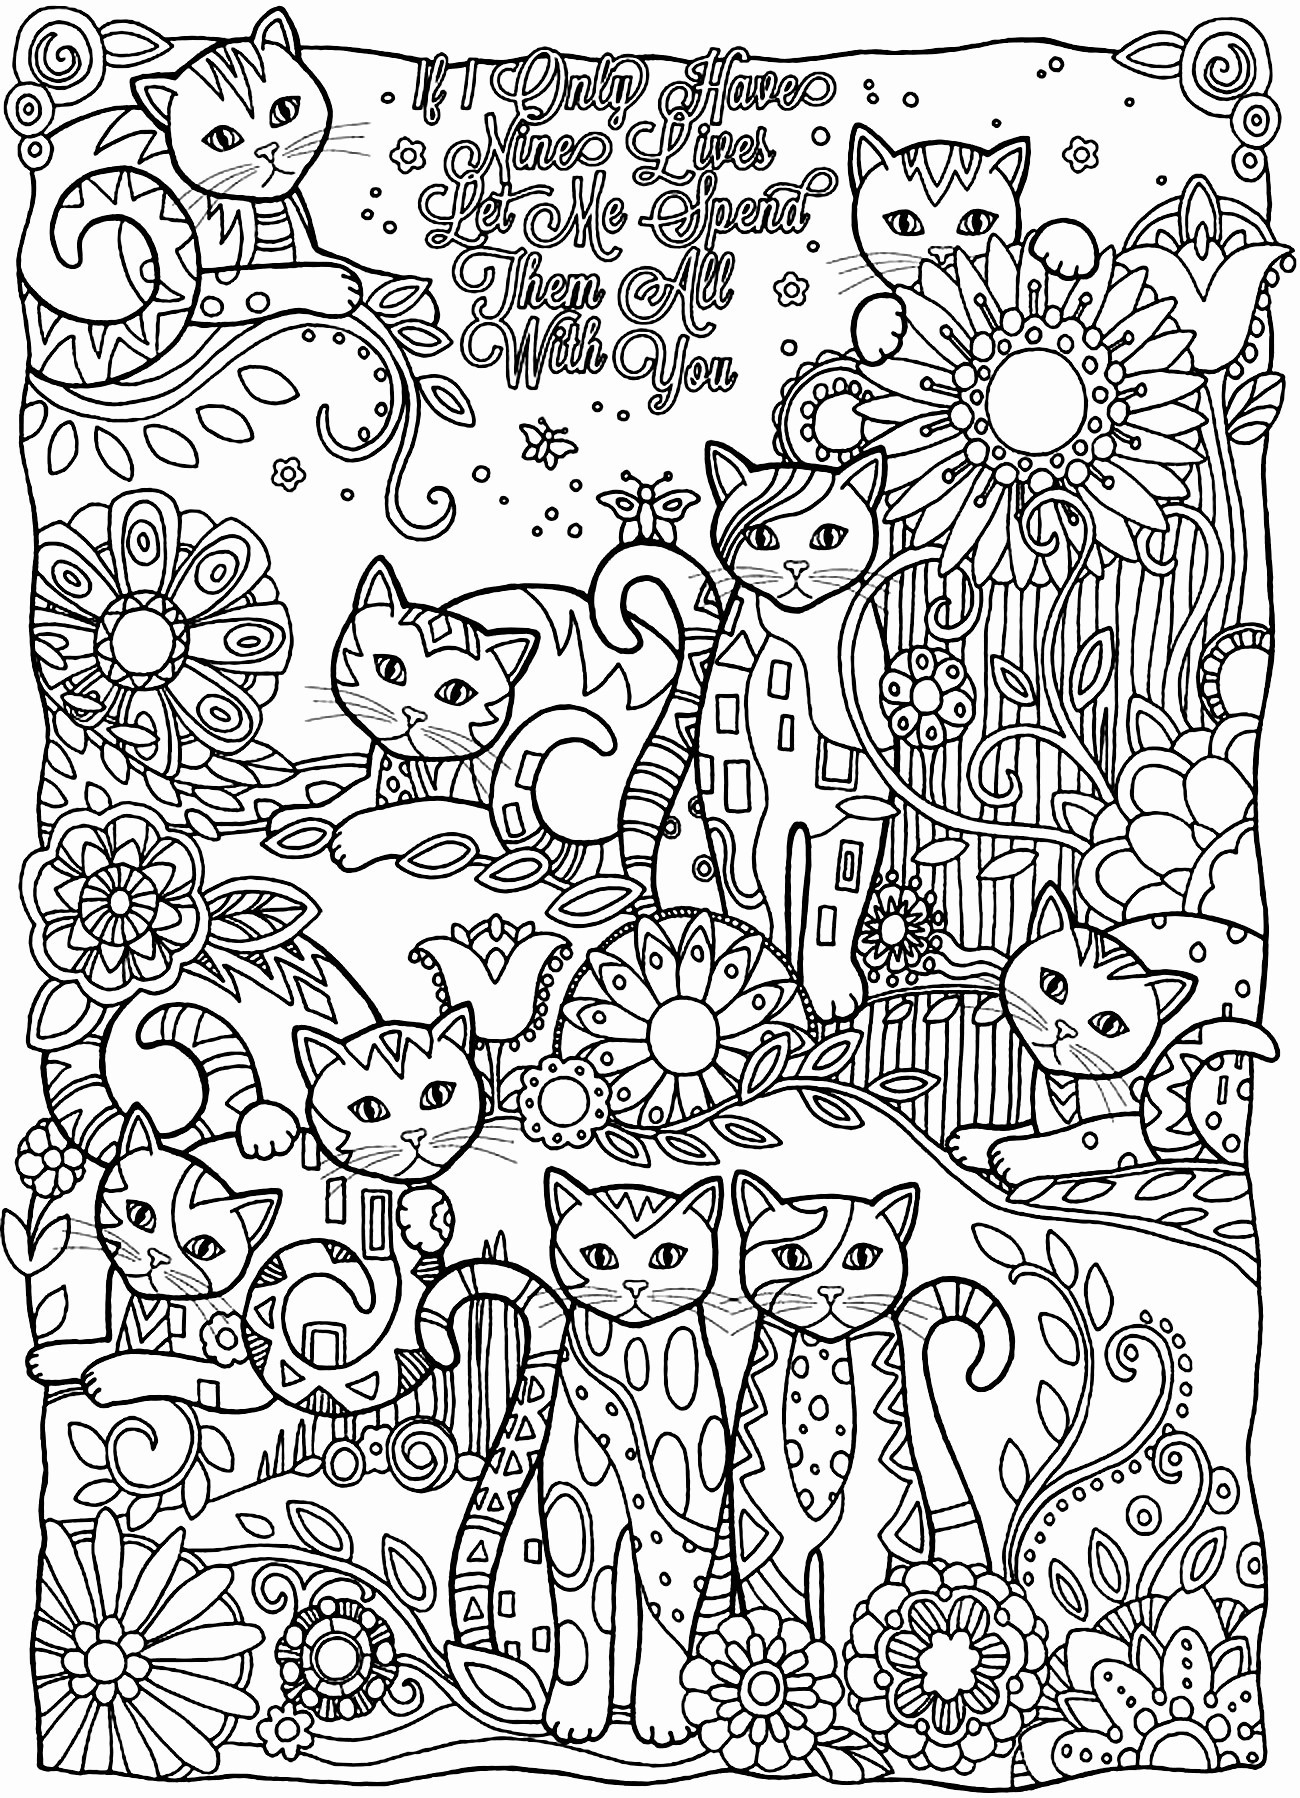 - Downloadable Coloring Pages Free Downloadable Coloring Pages For